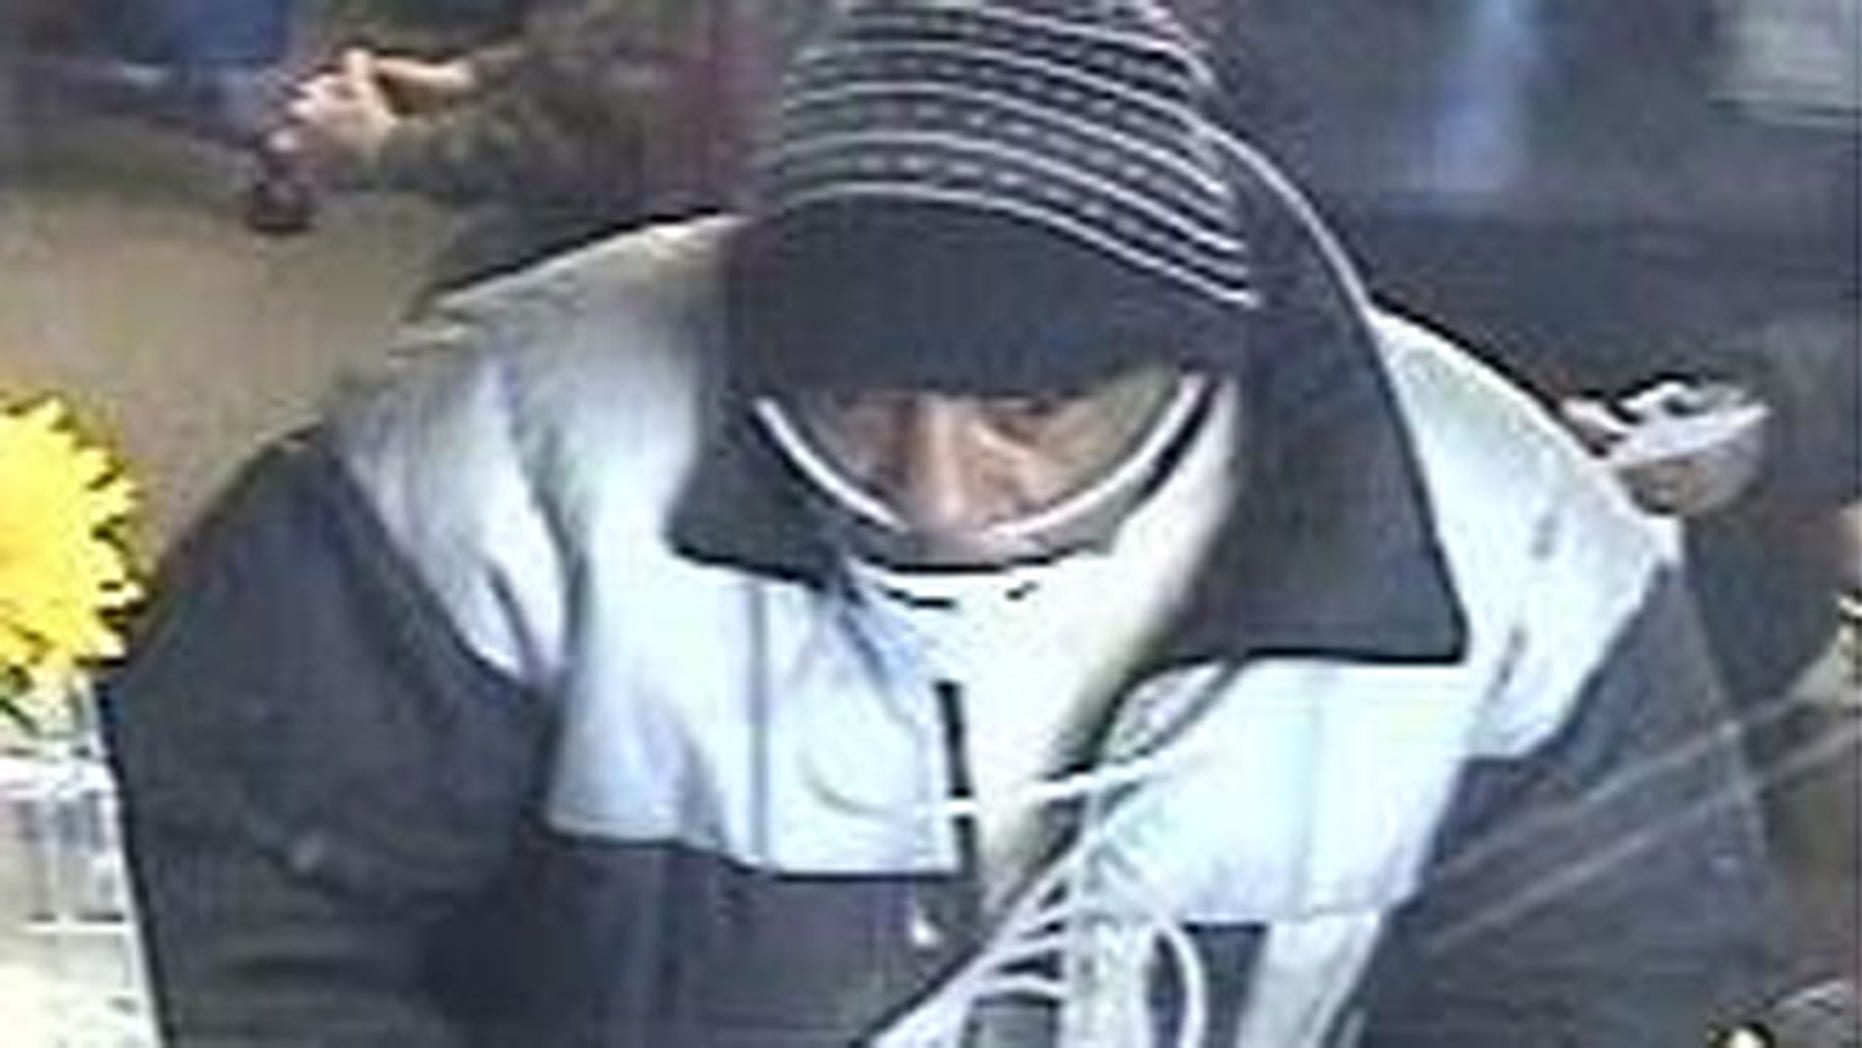 Dec. 7: Suspect in robbery of Chase Bank in Denver.